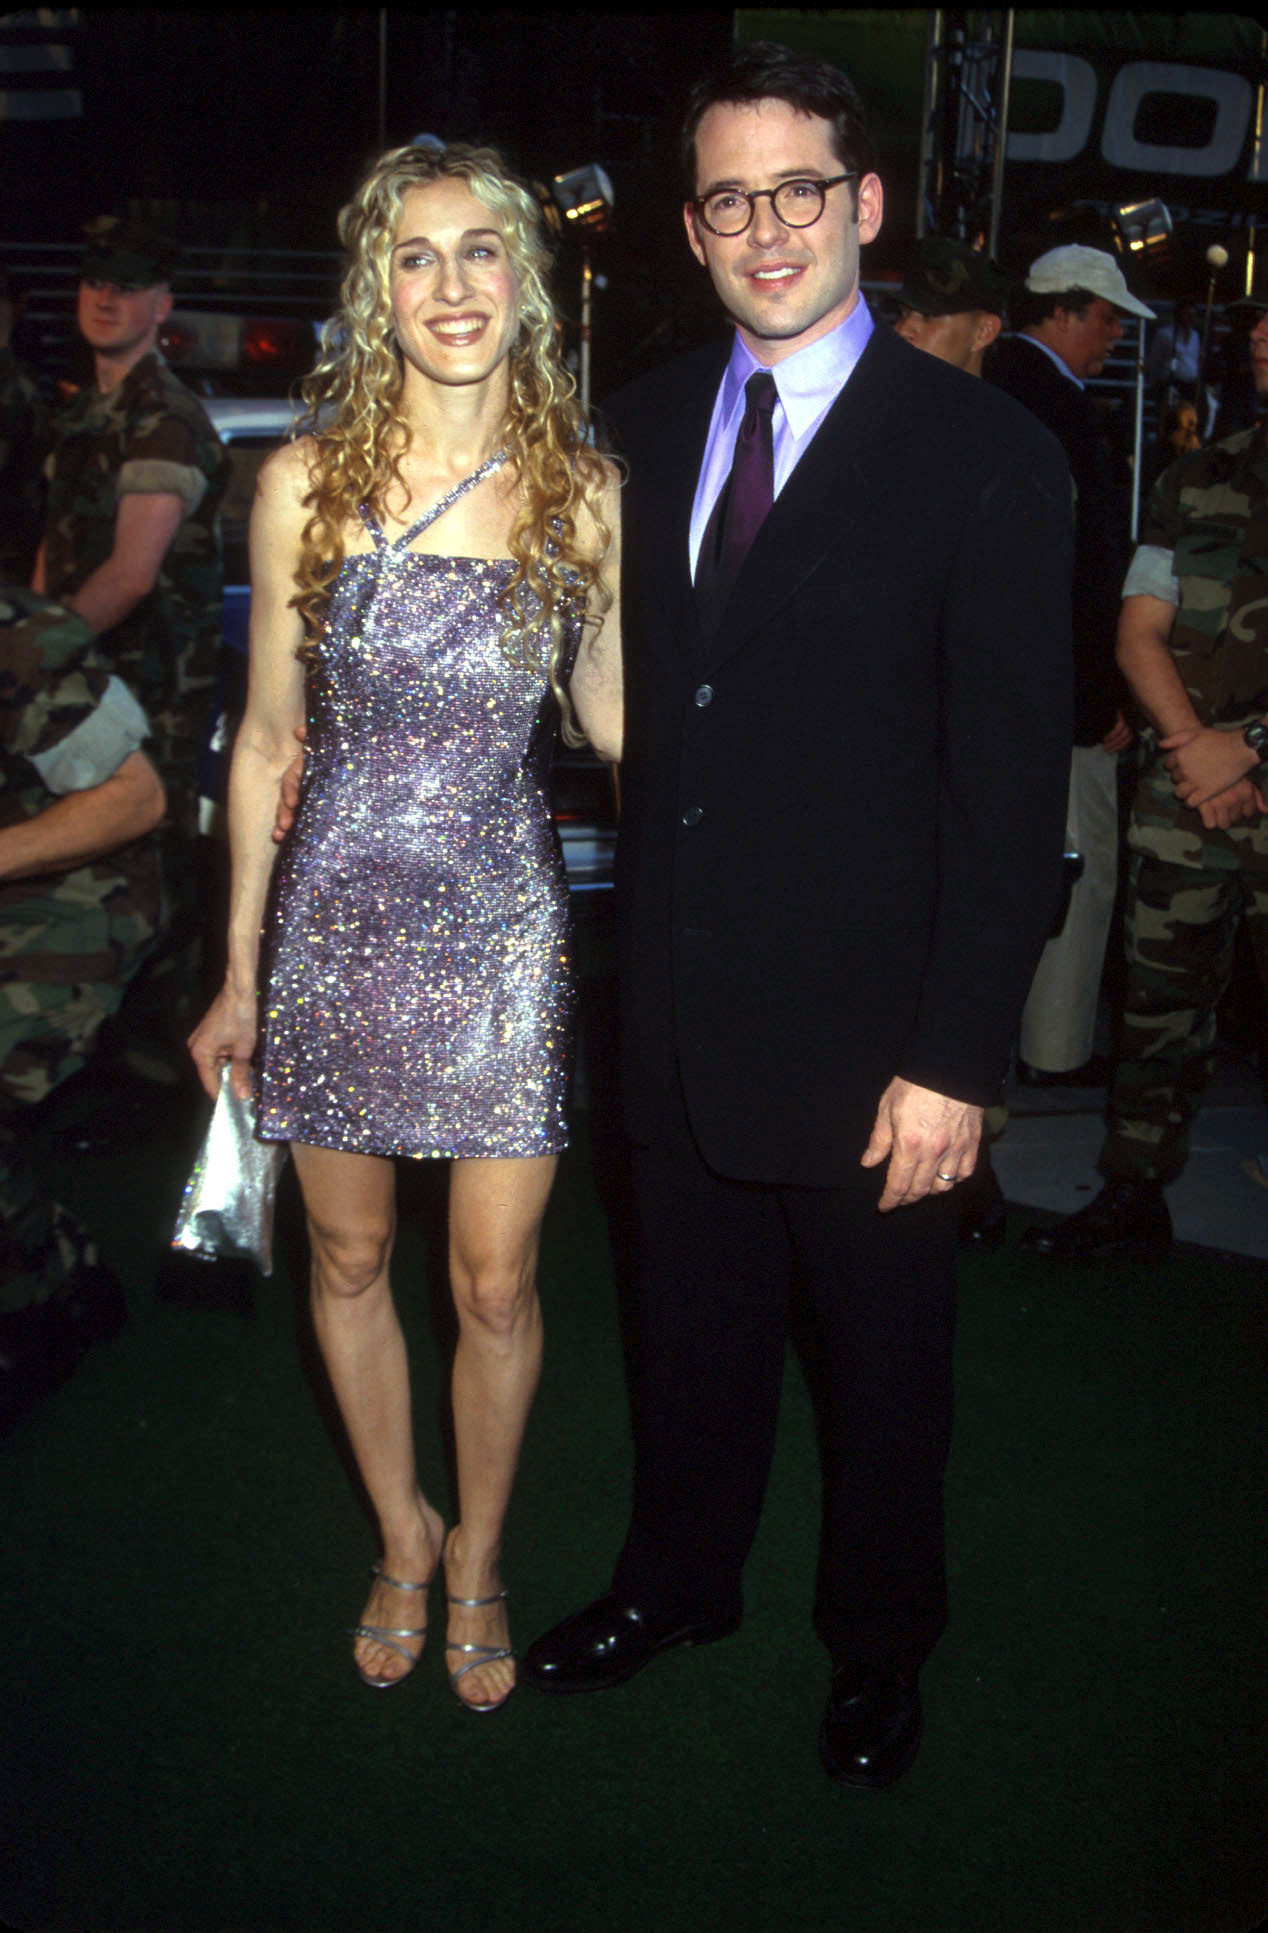 UNDATED FILE PHOTO: Sarah Jessica Parker and Matthew Broderick. (Photo by Diane Freed)